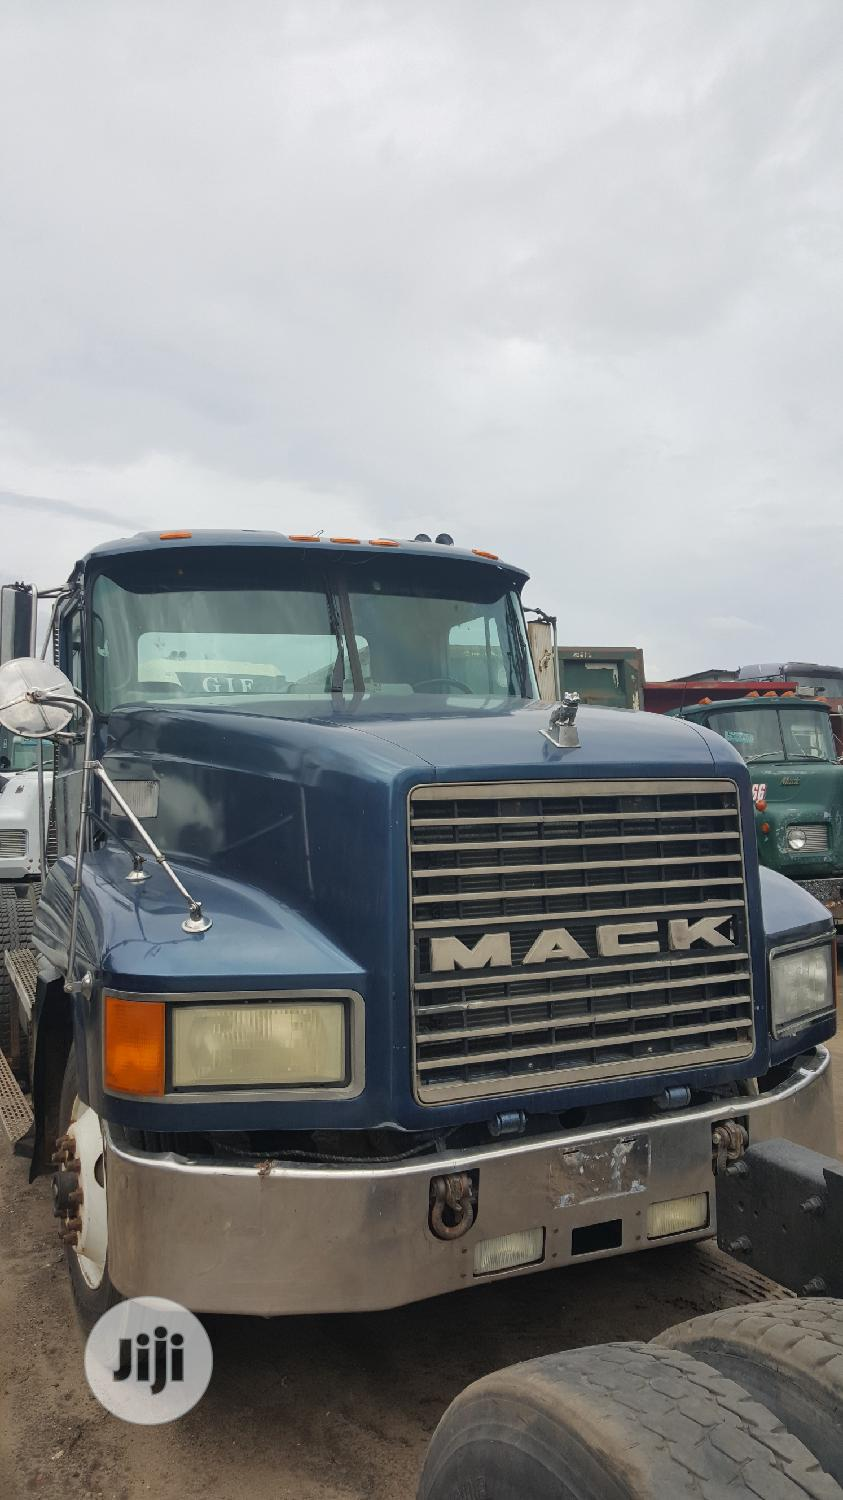 Newly Arrived CH MACK Ten Tyres Trailer Head Truck Superb | Trucks & Trailers for sale in Apapa, Lagos State, Nigeria